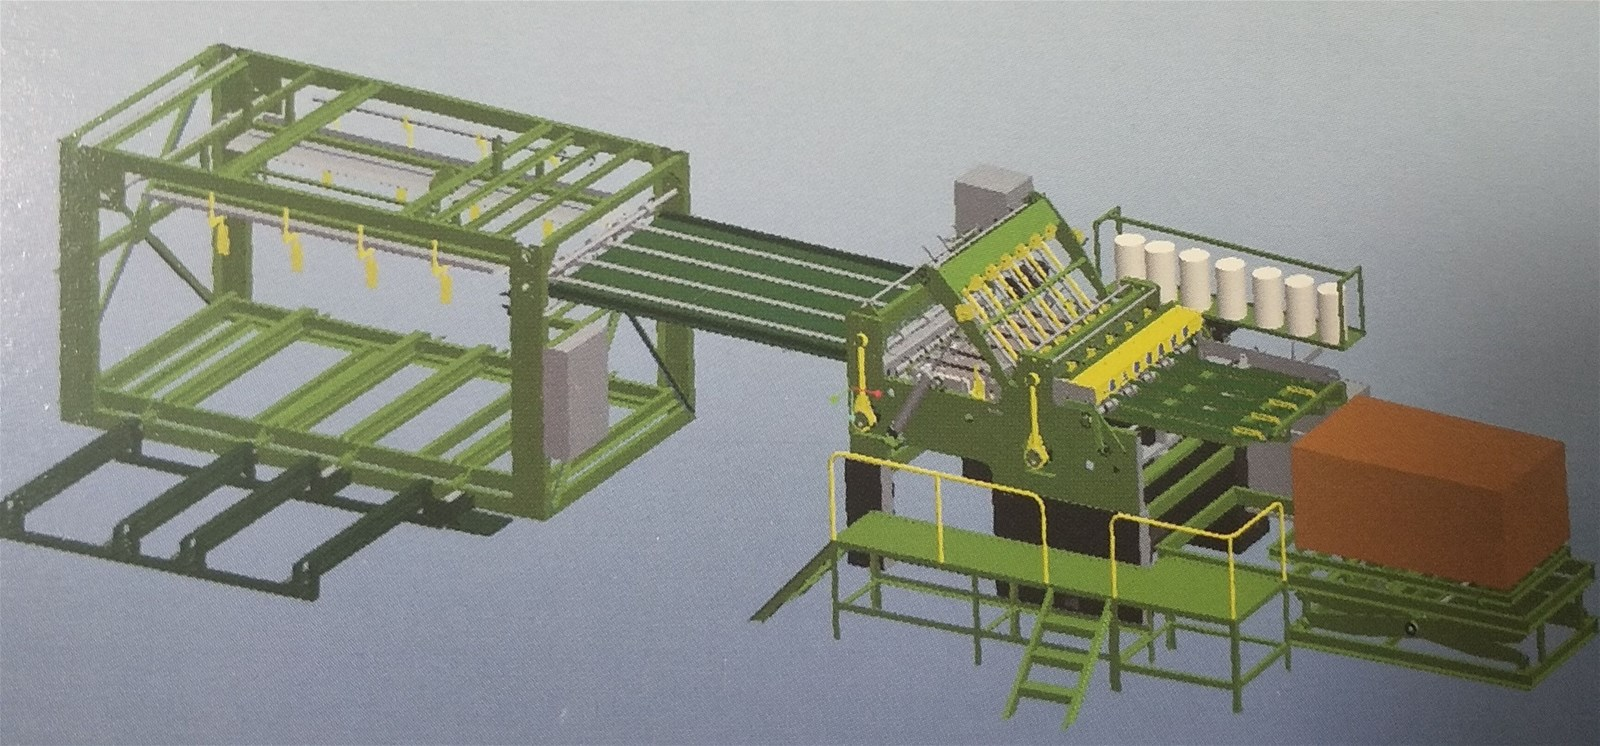 Veneer Splicing Machine for plywood production